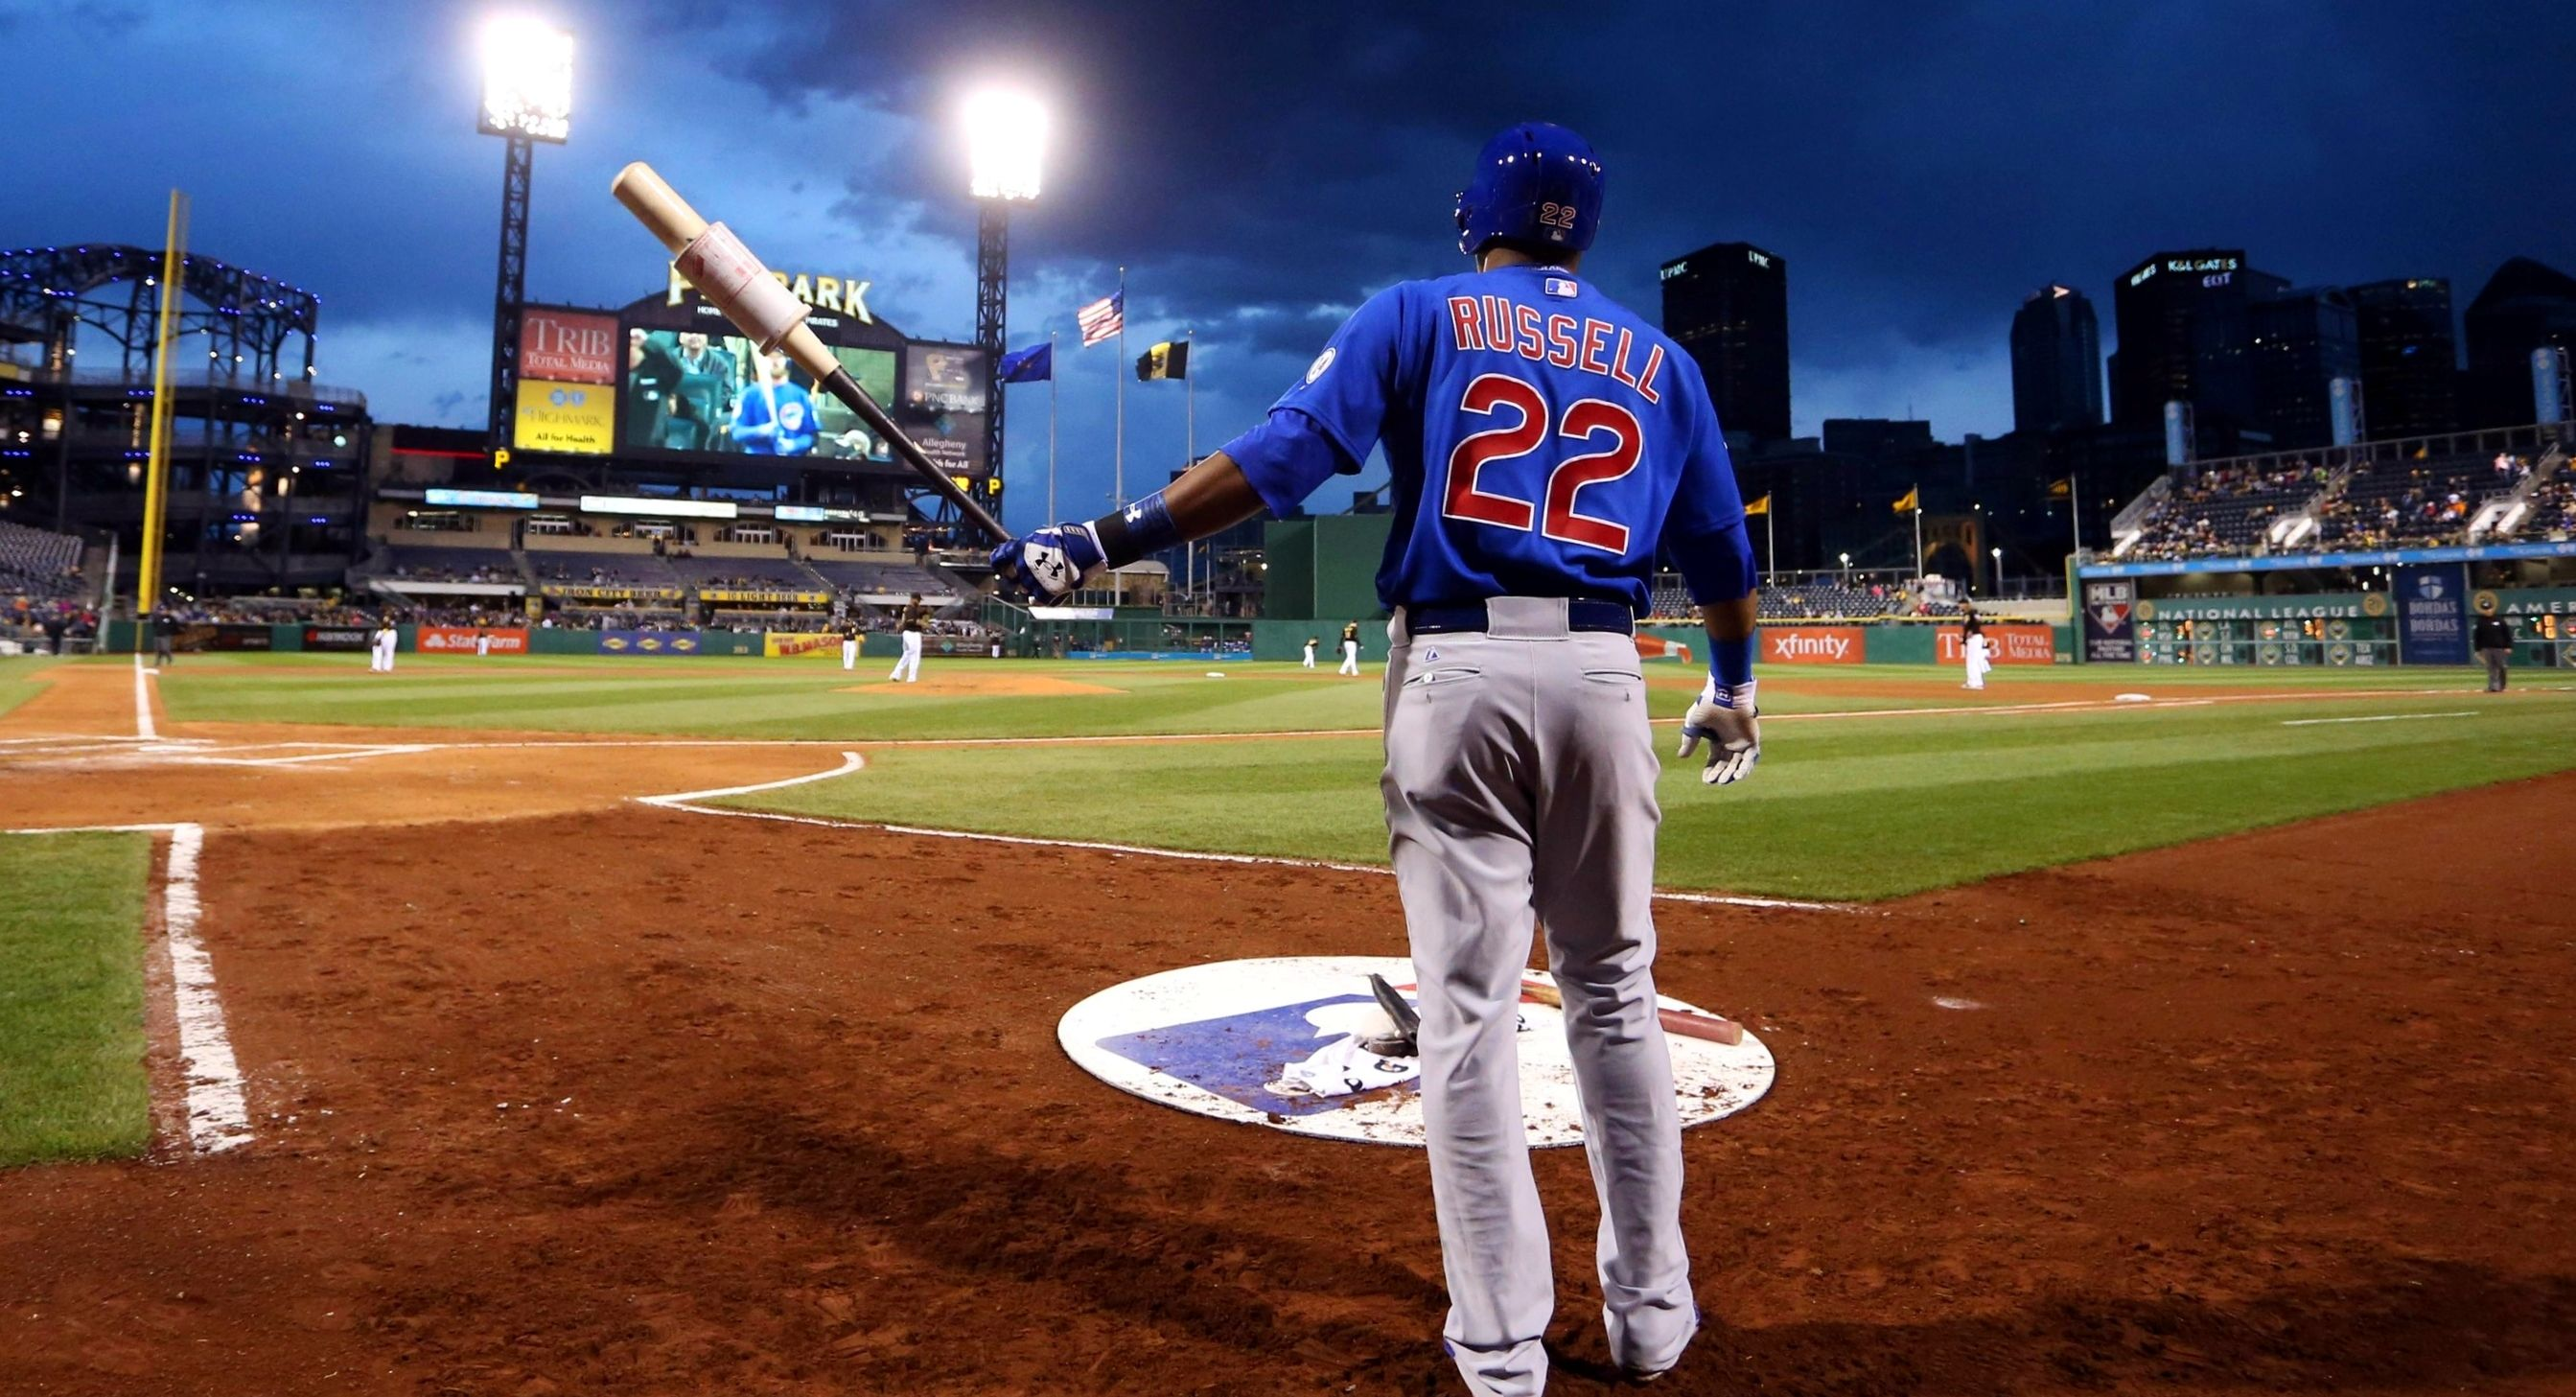 Addison Russell Of The Chicago Cubs In The On Deck Circle At Pittsburgh S Pnc Park Mlb Baseball Mlb Pnc Park